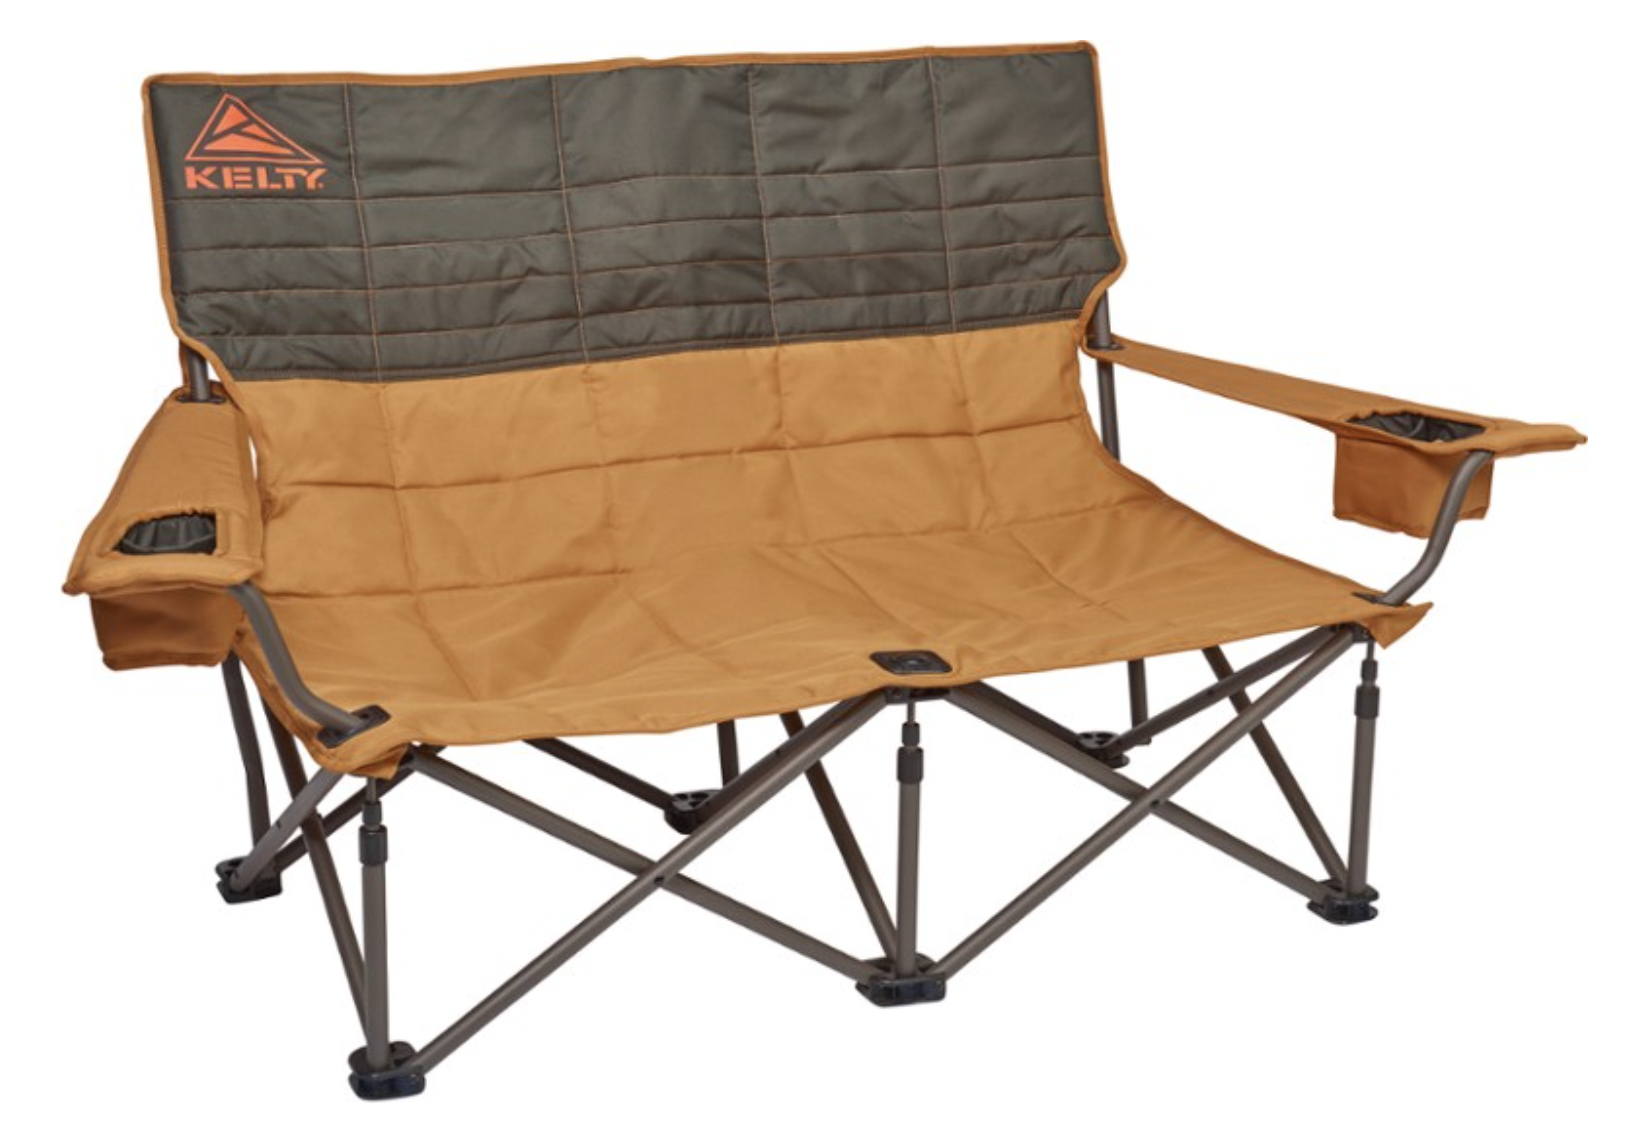 two person camping chair portable